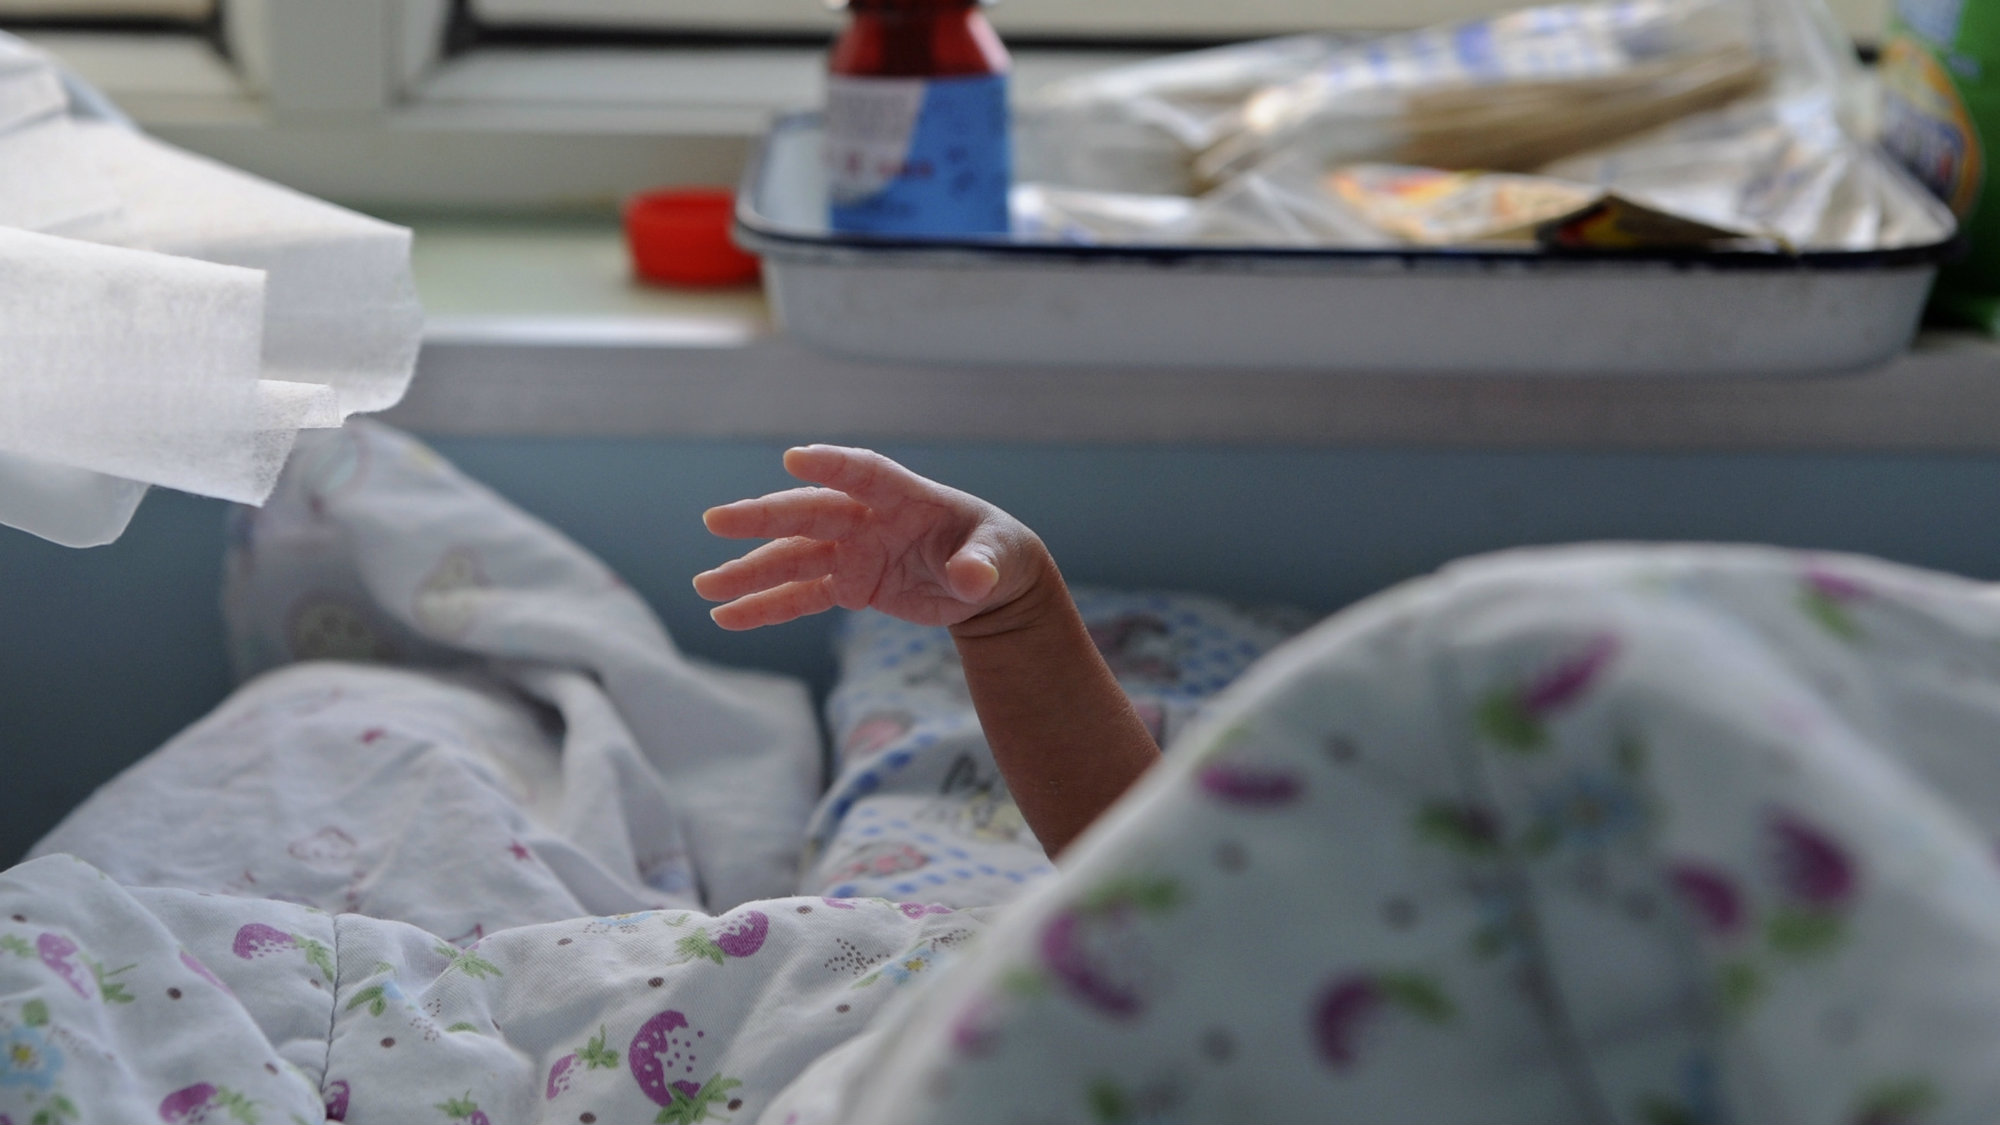 A baby stretches its hand from under a quilt at a local hospital in Jiaxing